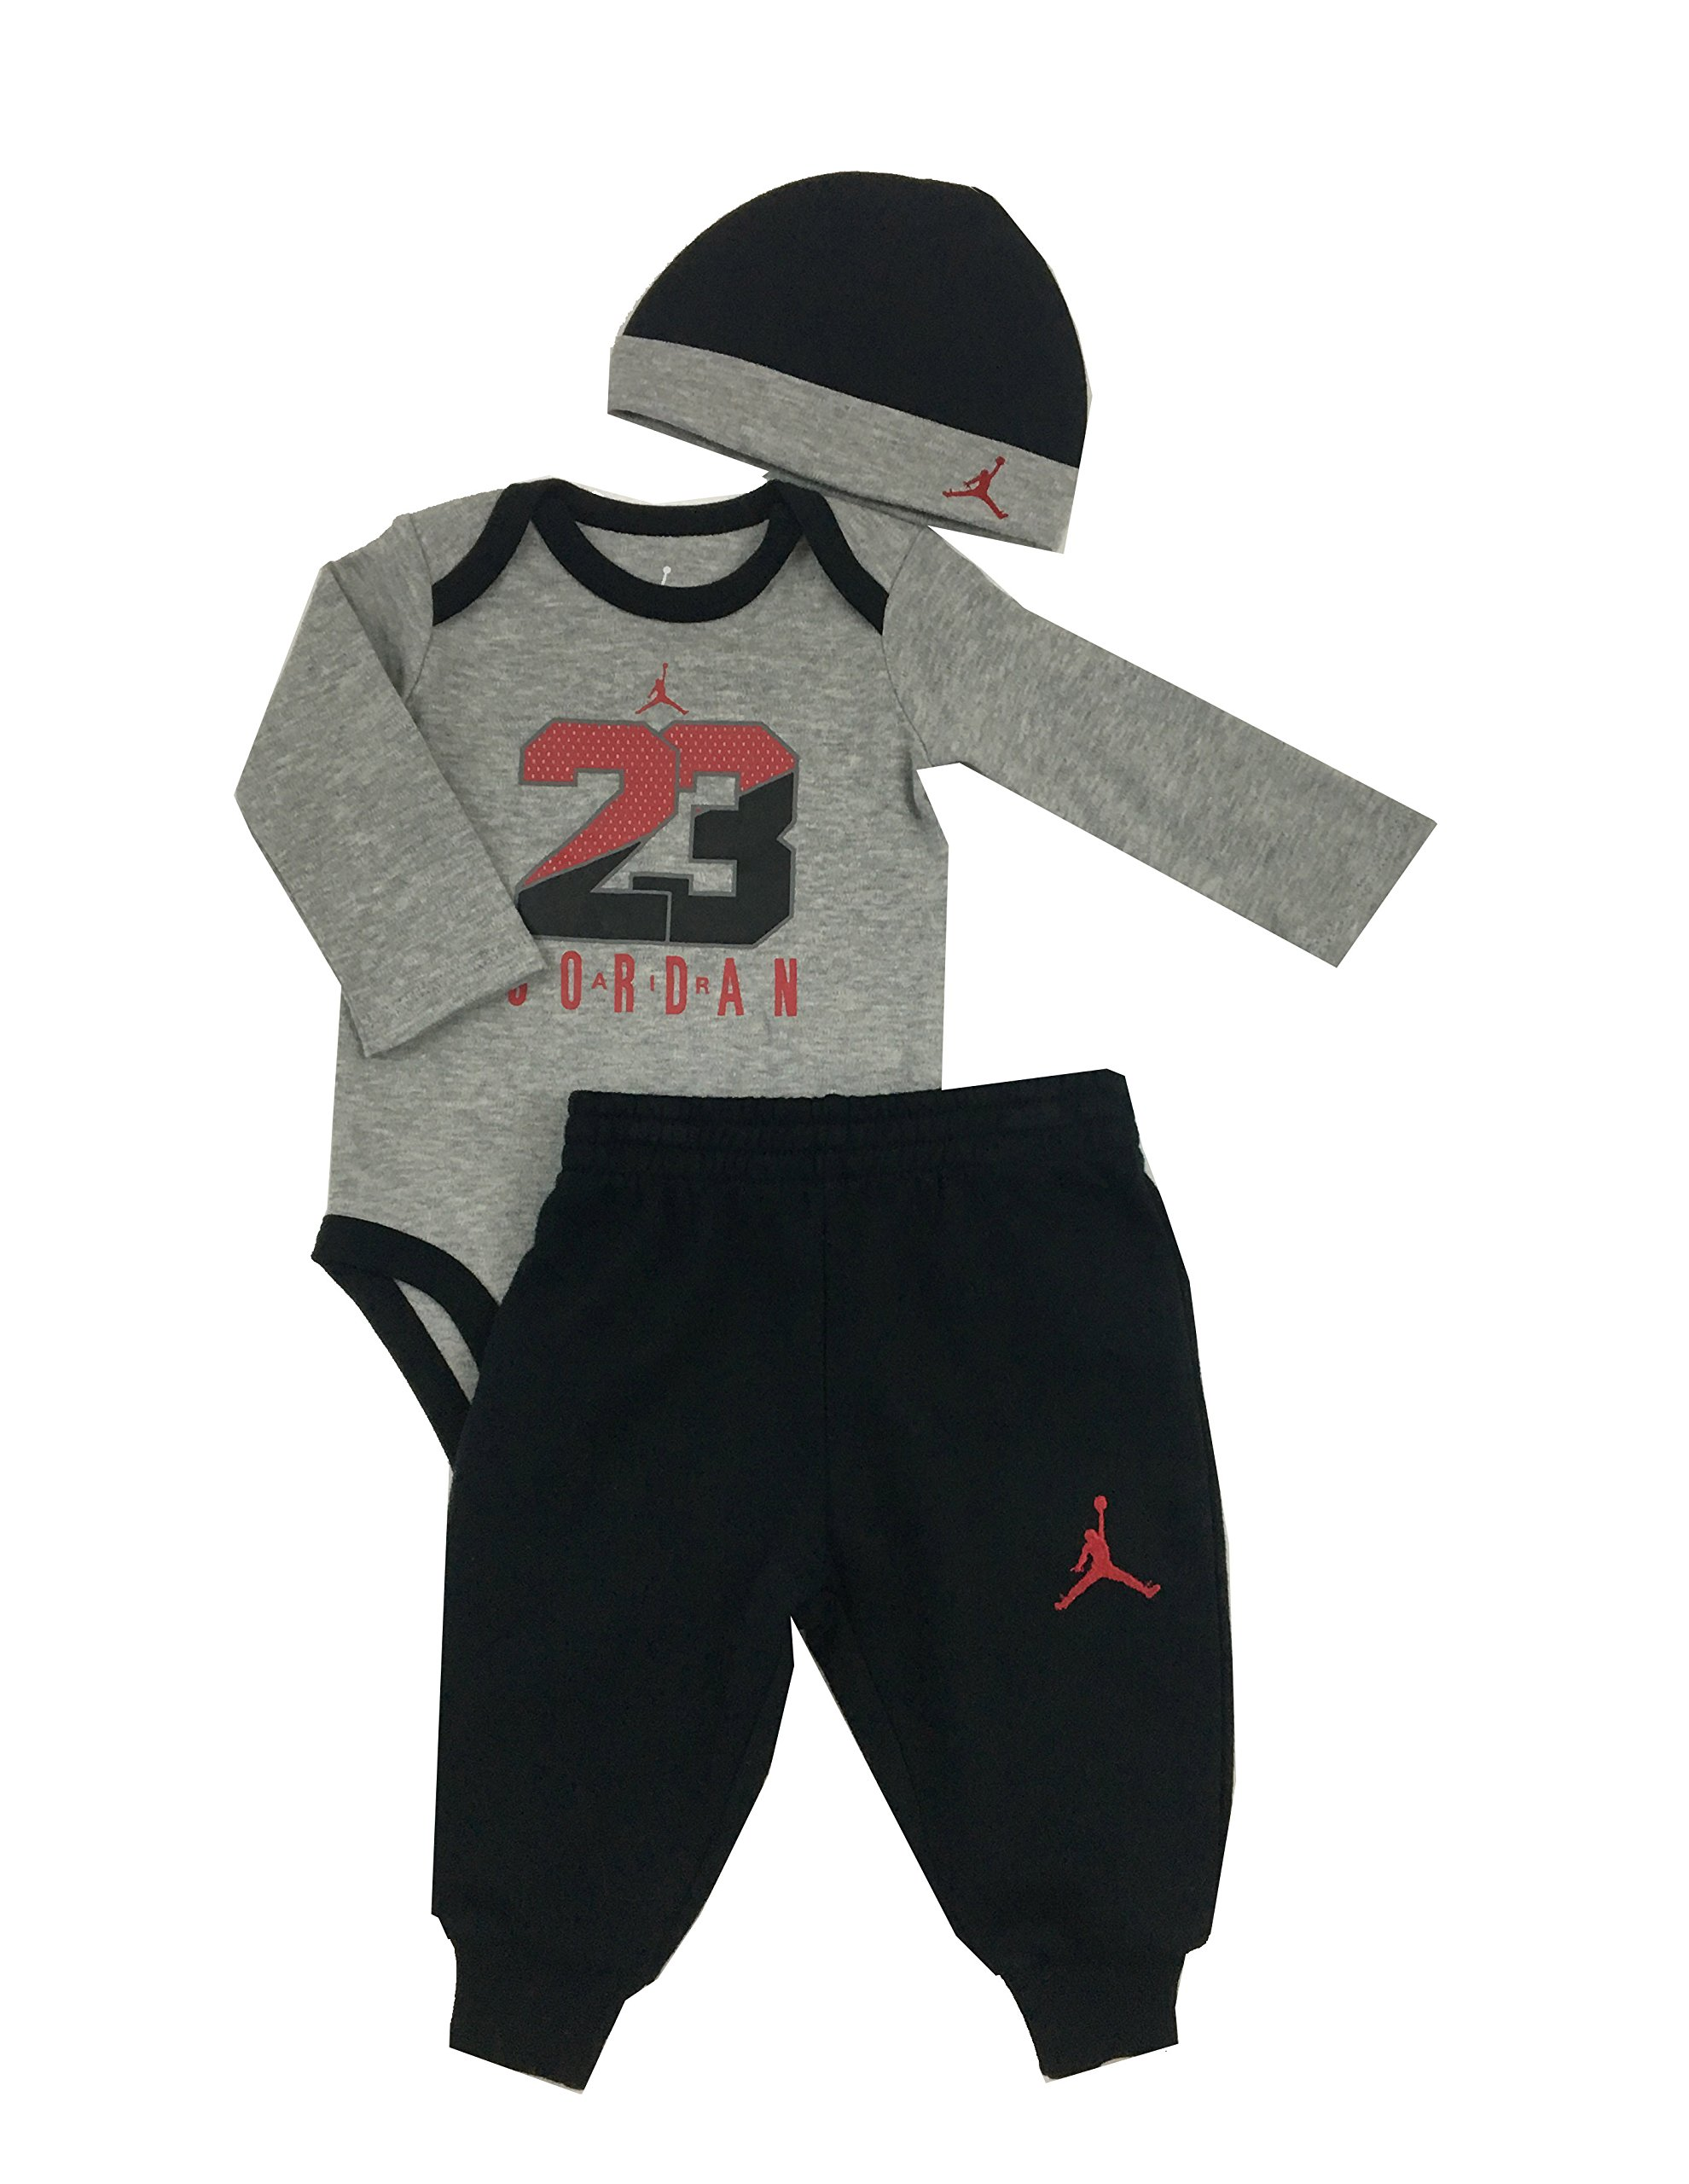 Air Jordan Infant Boys 3-Piece Onesie, Pant, and Hat Set Black/Dark Grey Heather Size 6/9 Months